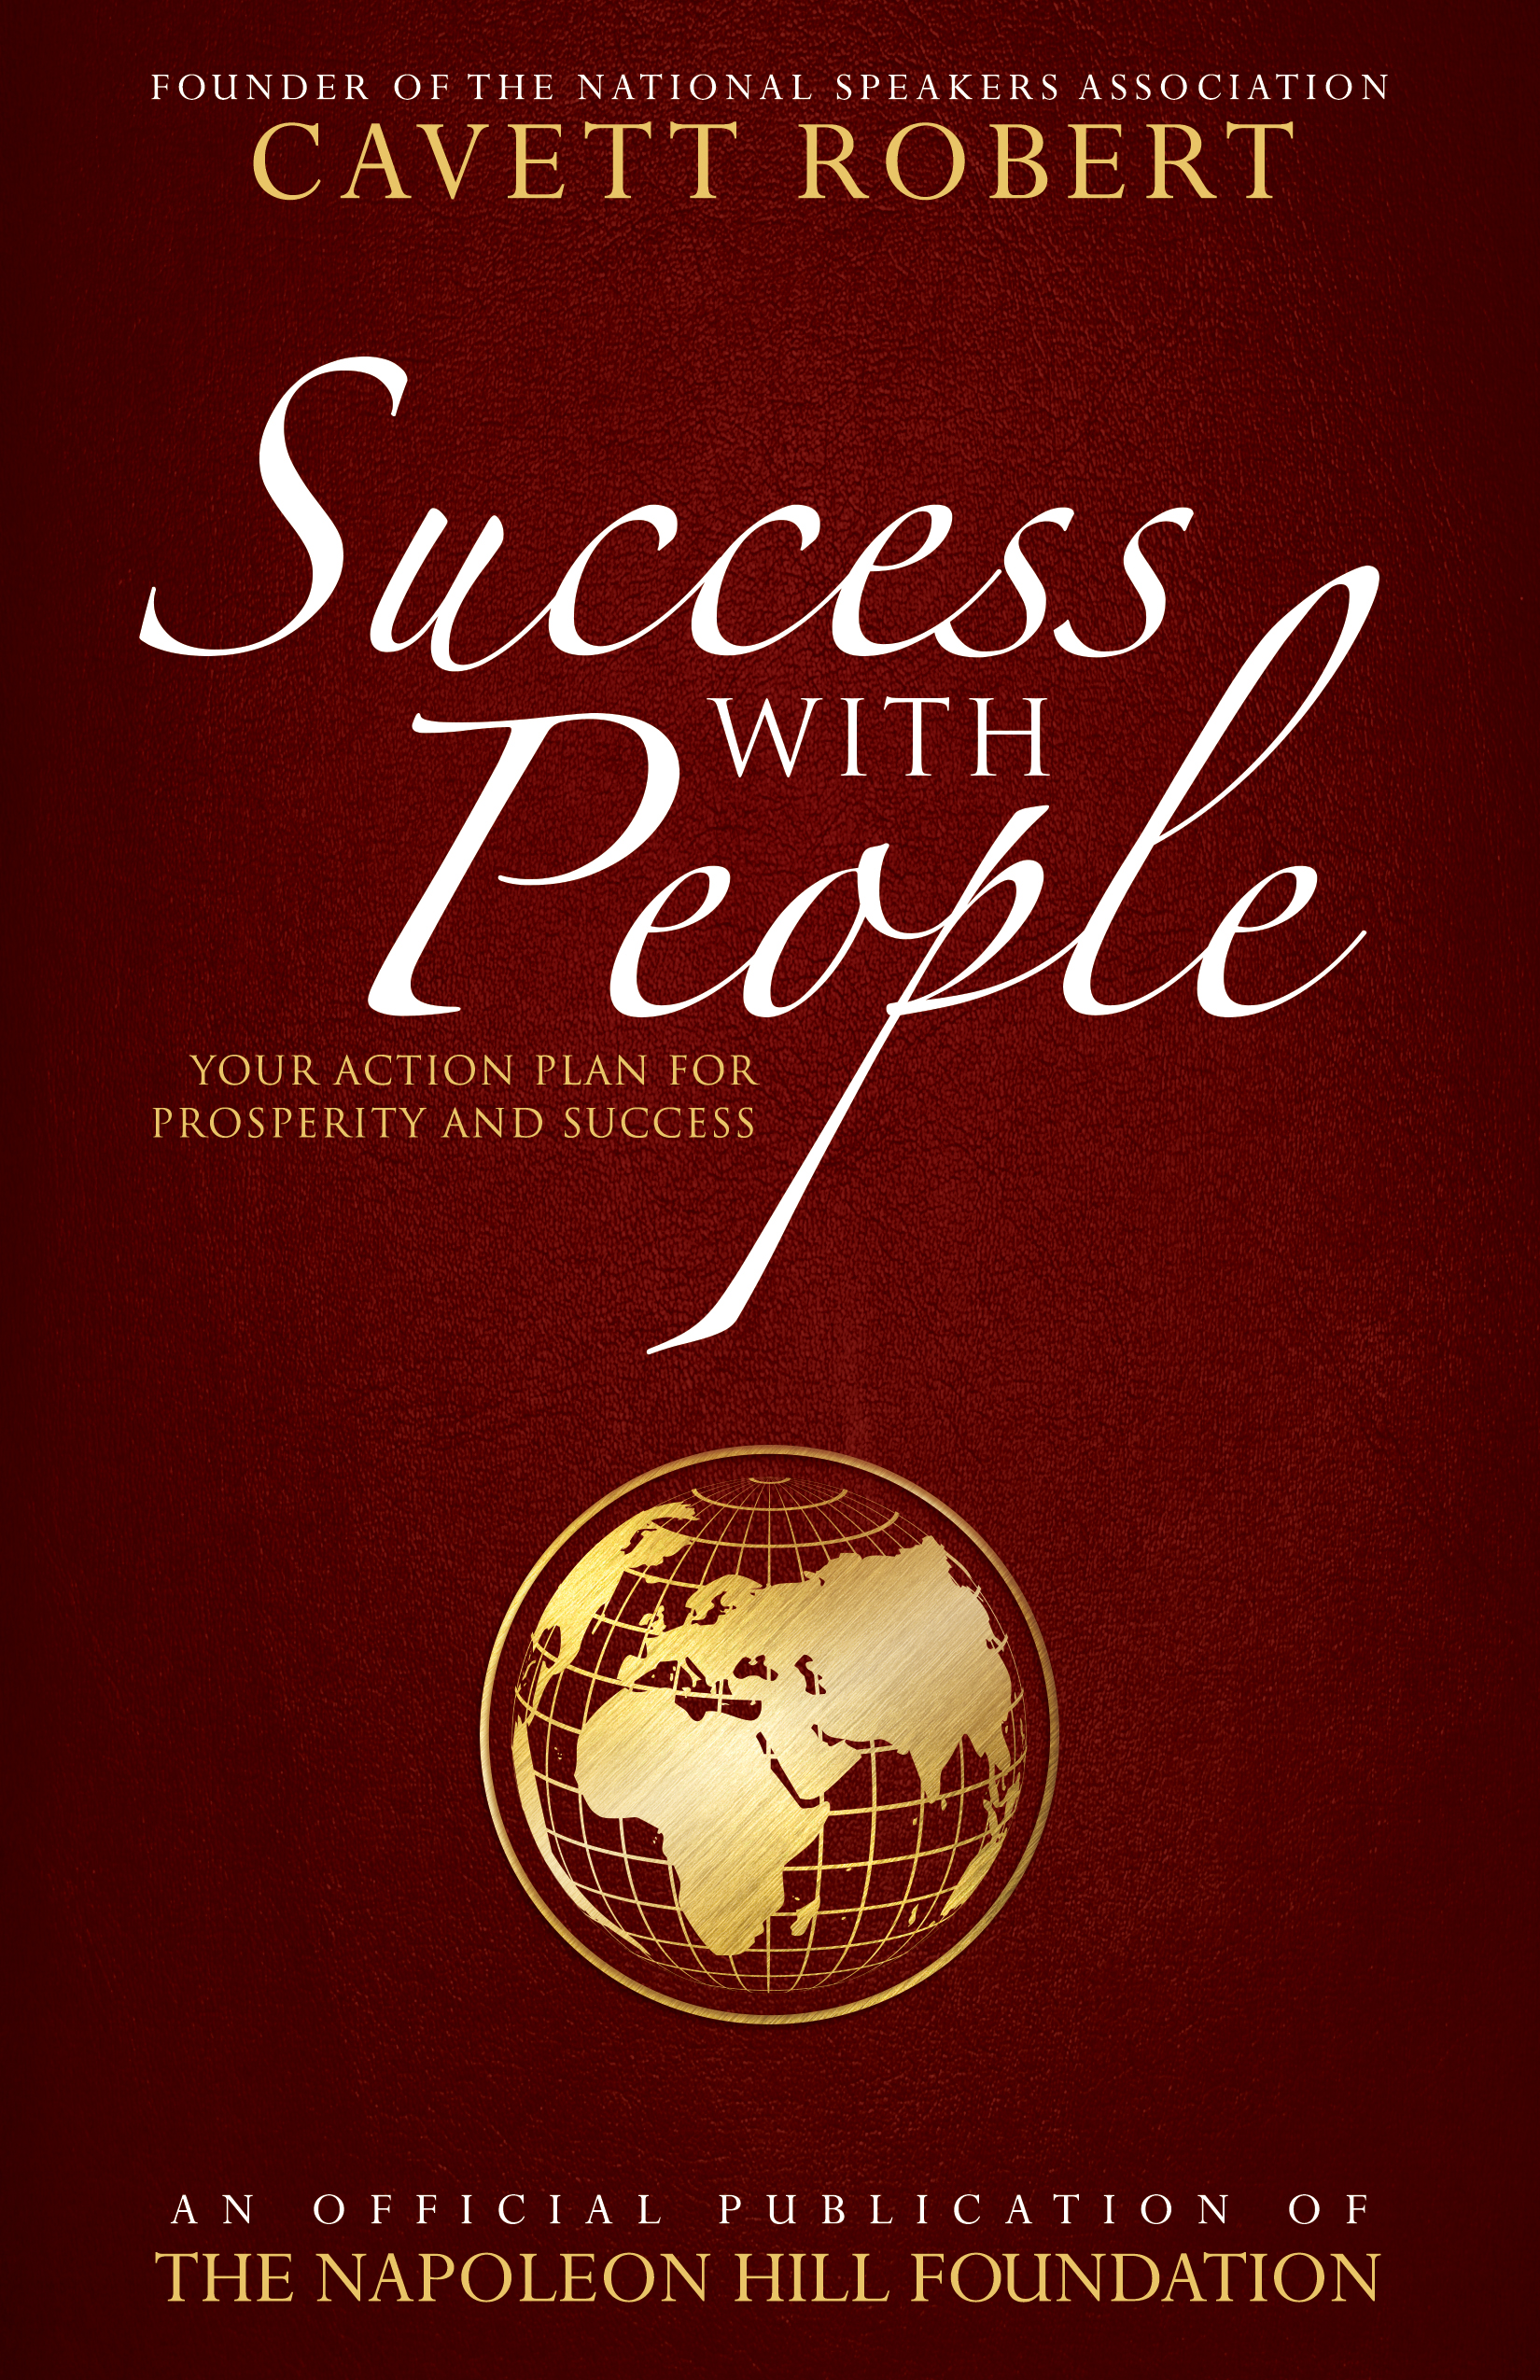 Success with People - By cavett robert